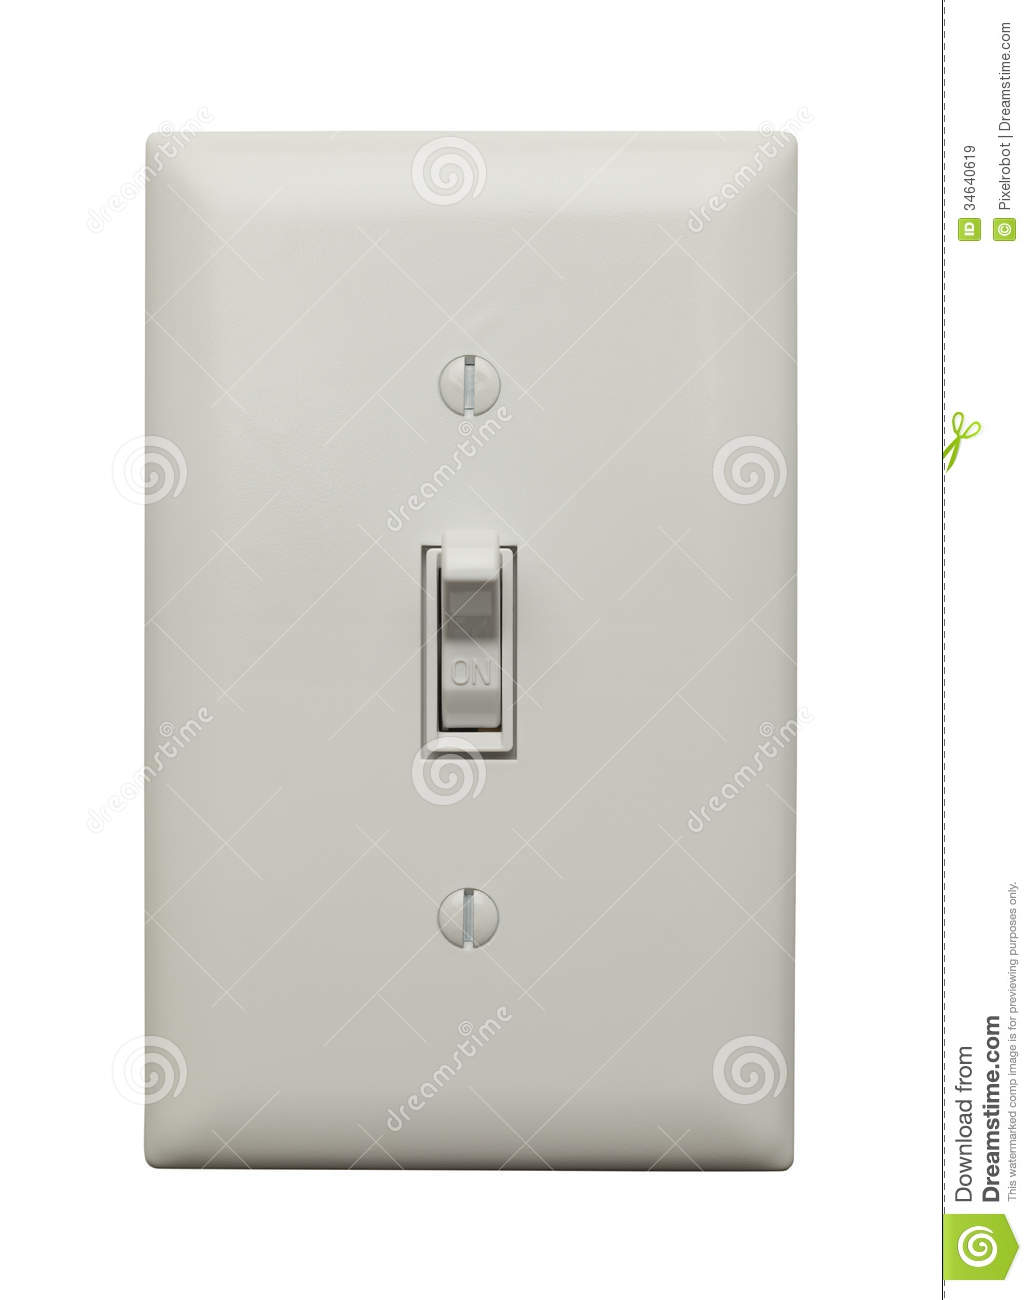 Switch Light On Switch Stock Image Image Of Color Concepts Remote 34640619